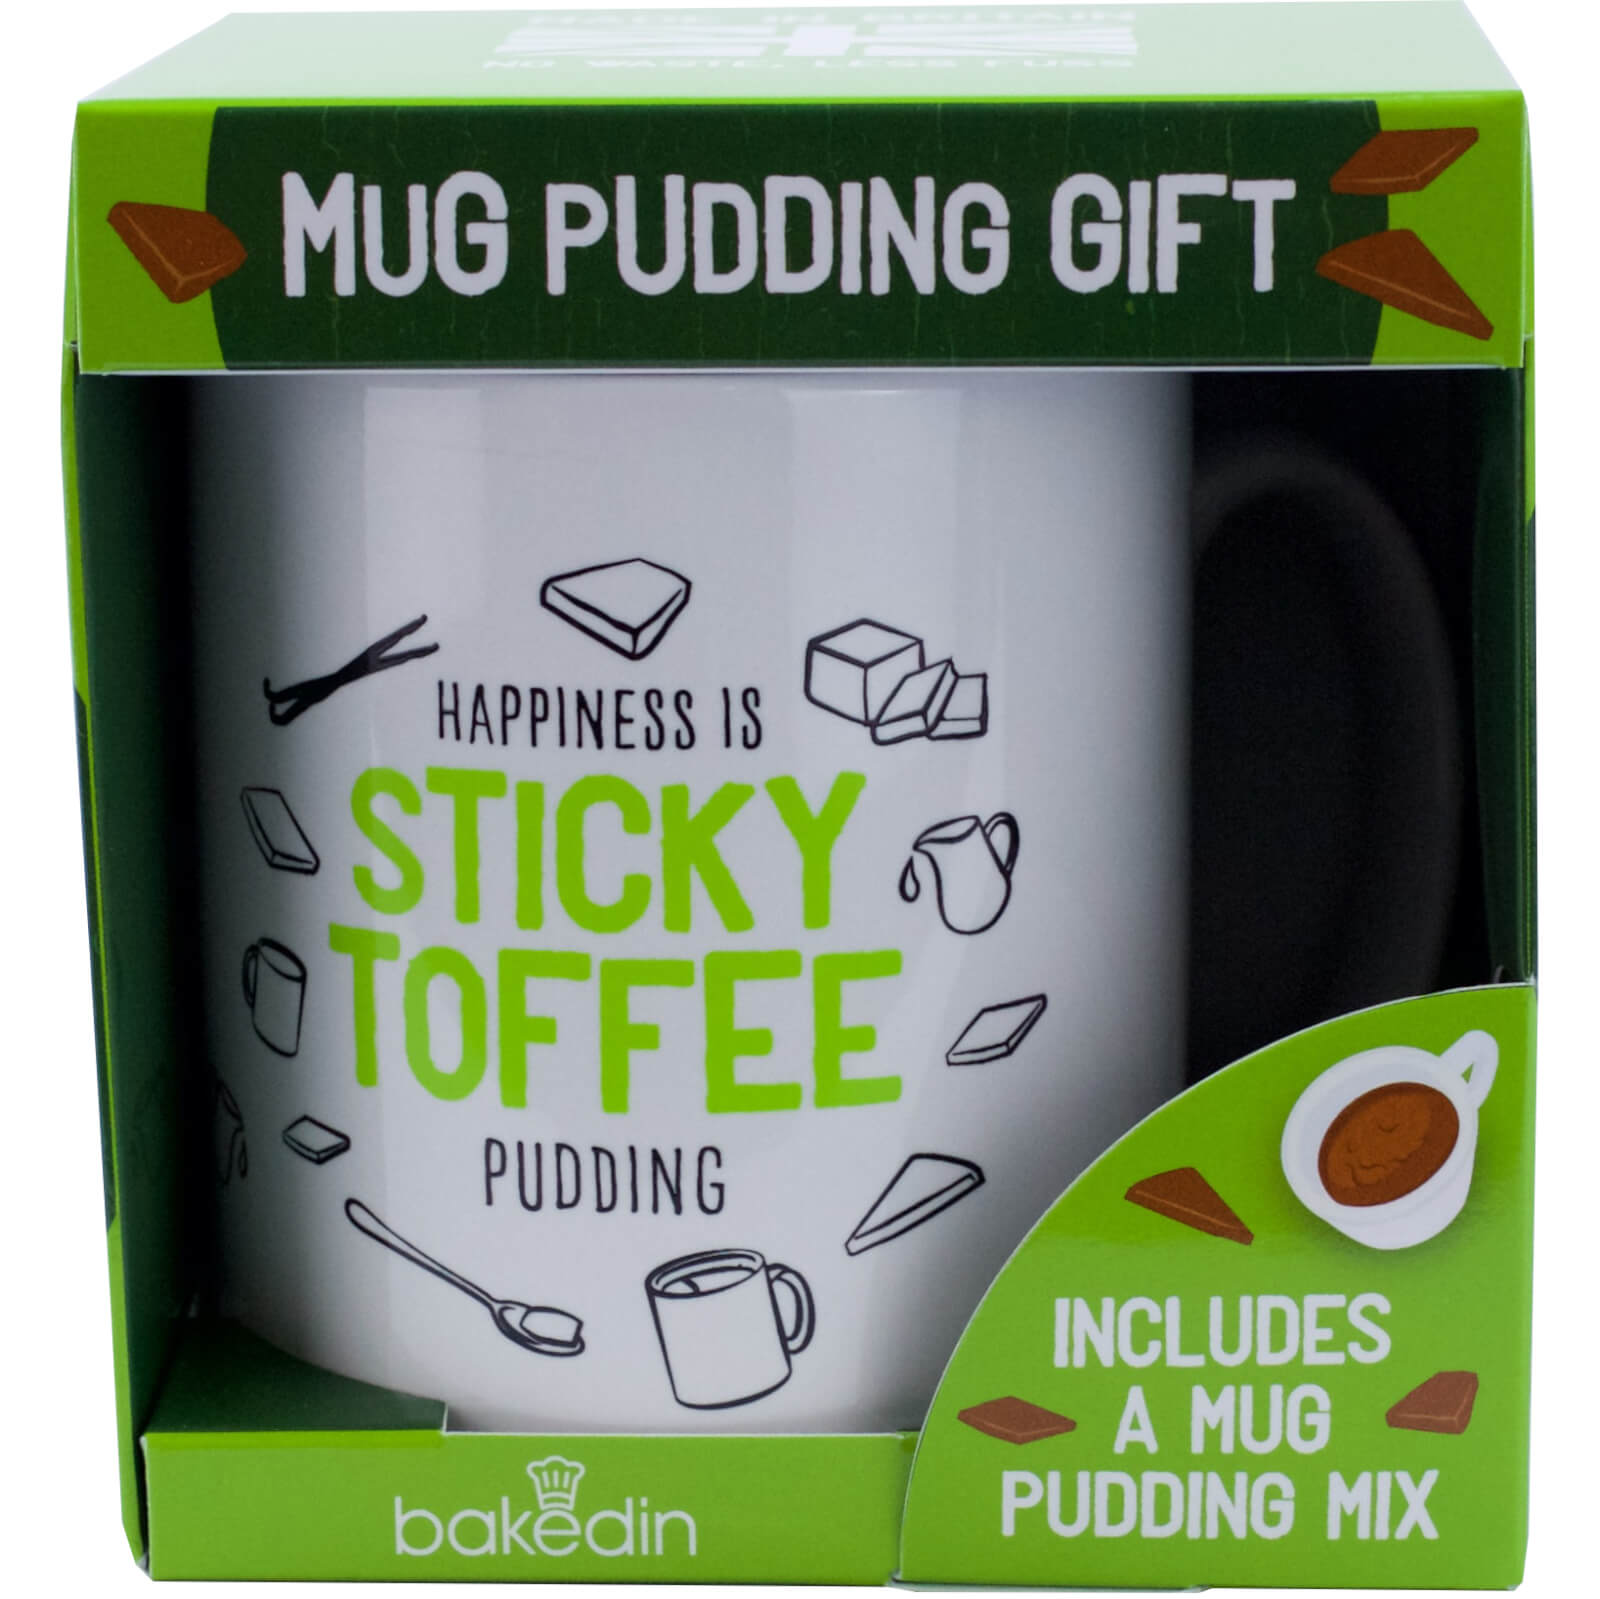 bakedin Sticky Toffee Pudding Mug Gift Set